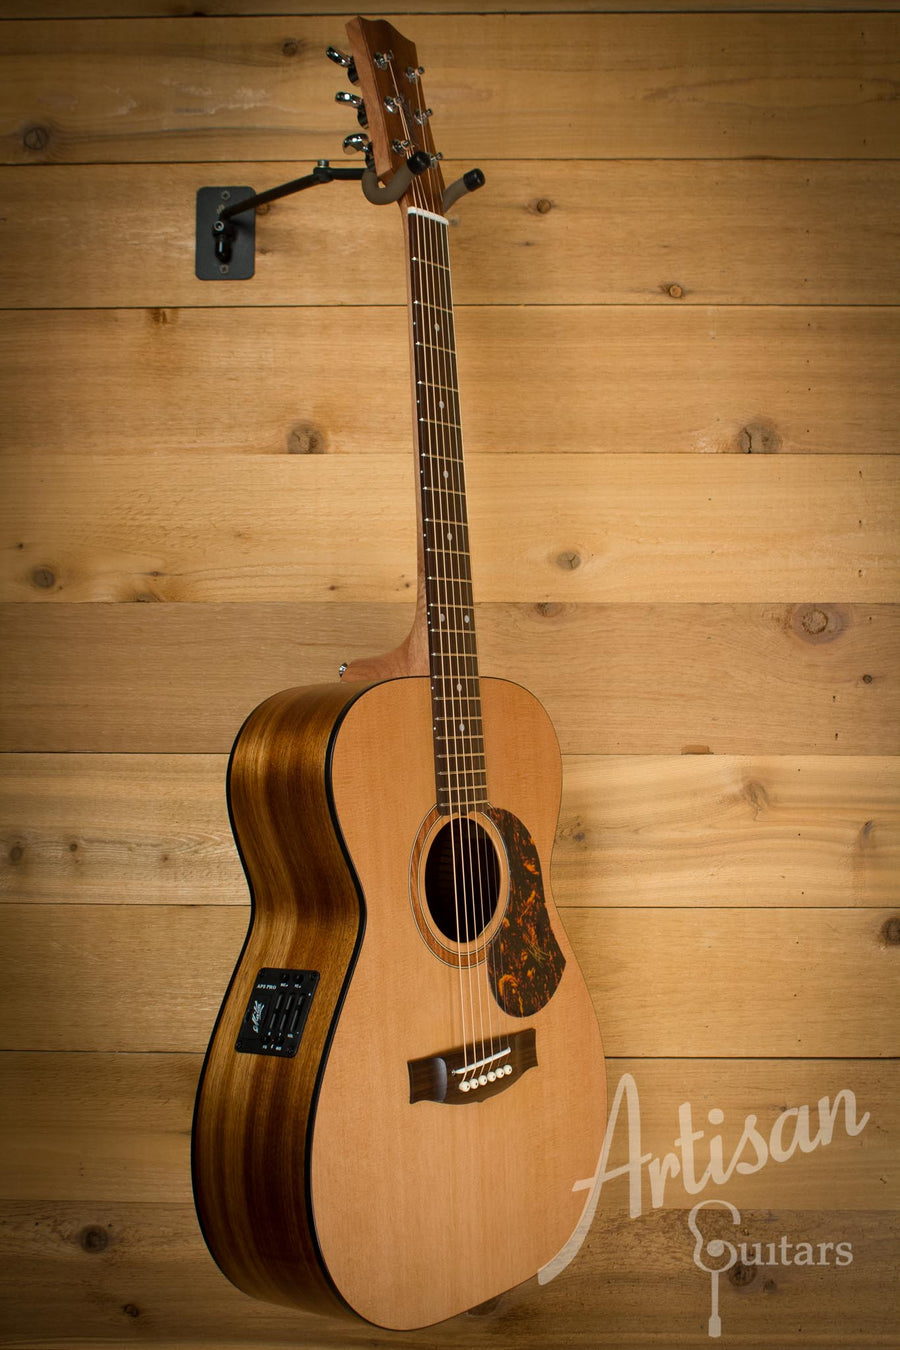 Maton SRS808 Guitar Western Red Cedar and Solid Blackwood AP5 Pro  ID-10123 - Artisan Guitars